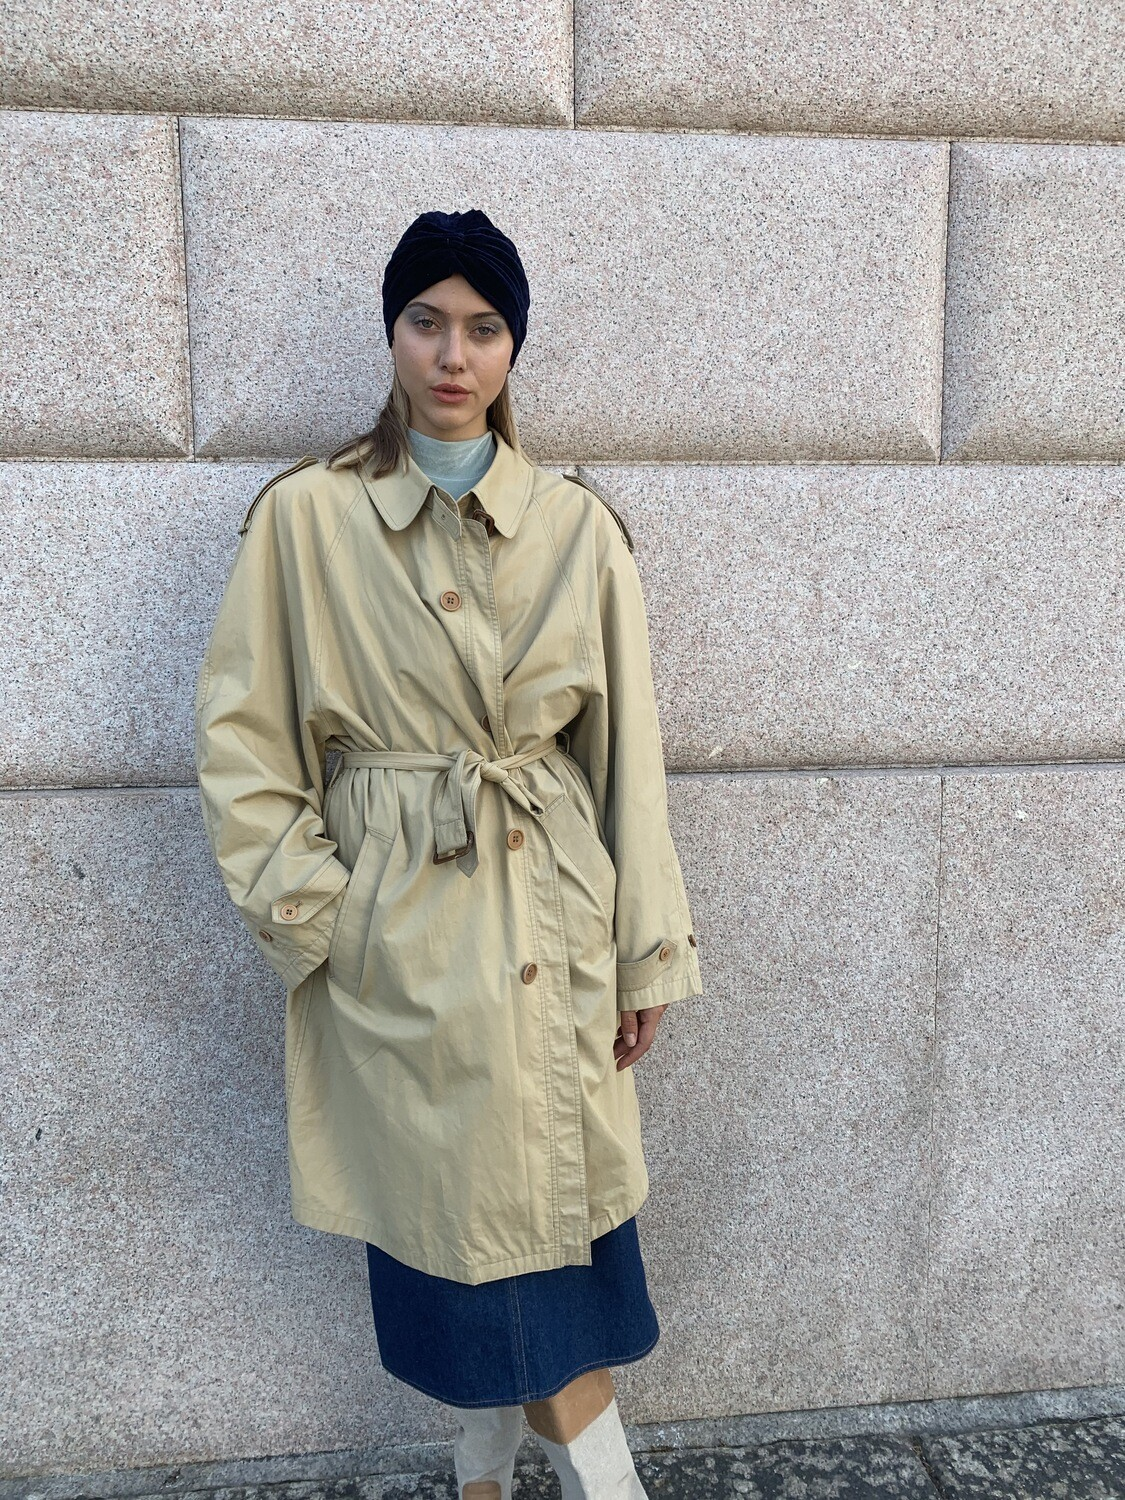 Vintage 1990's Trench Coat Oversized Lined